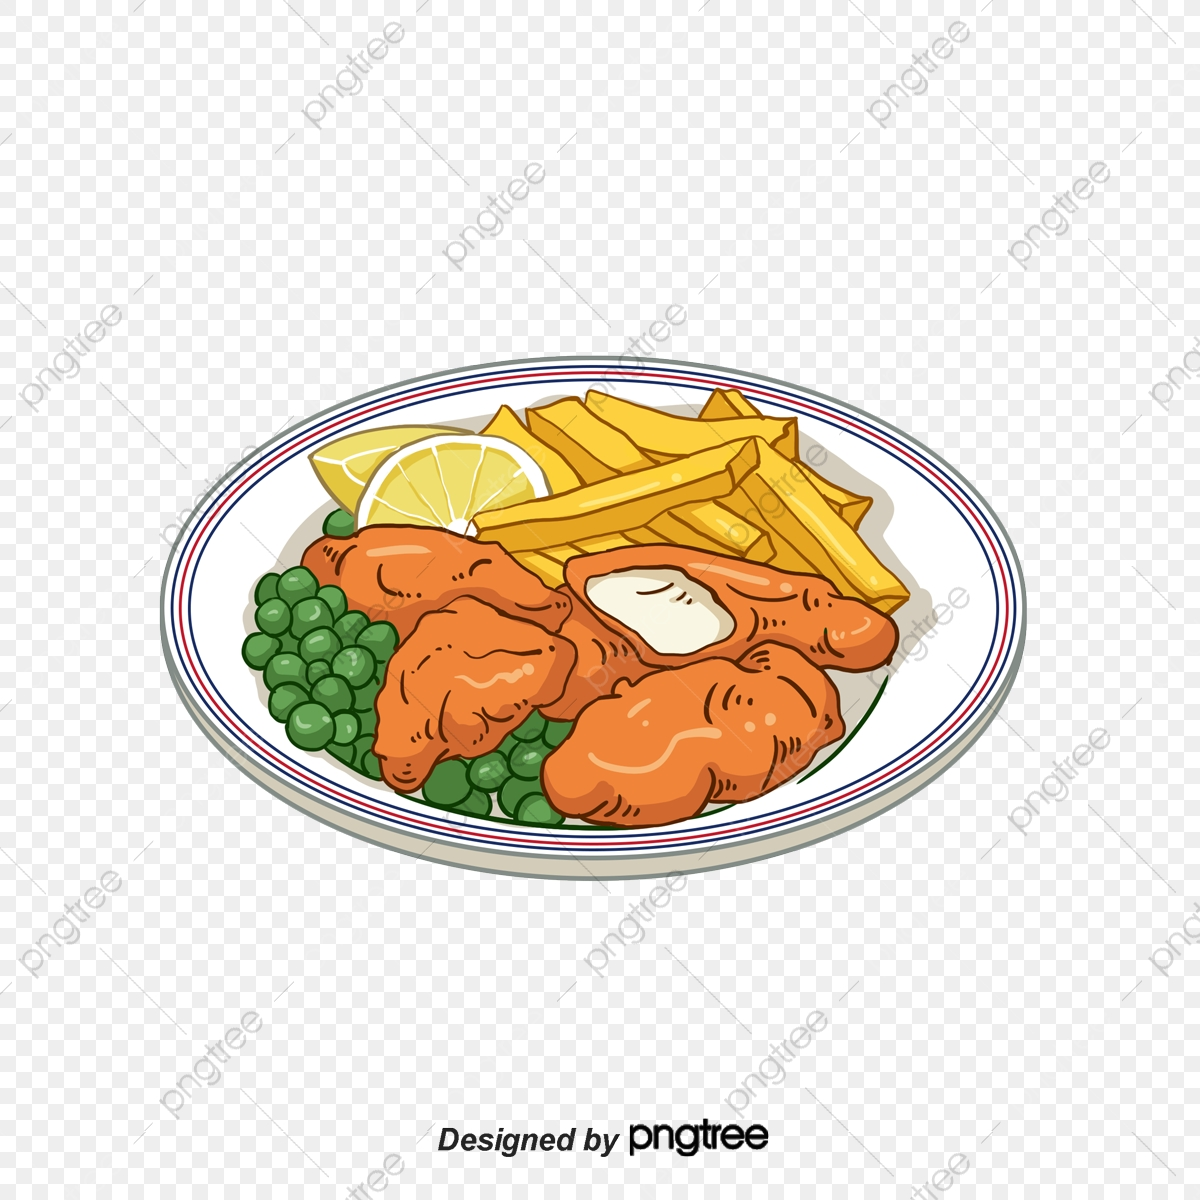 Fish and chips clipart free. Hand painted cartoon lemon